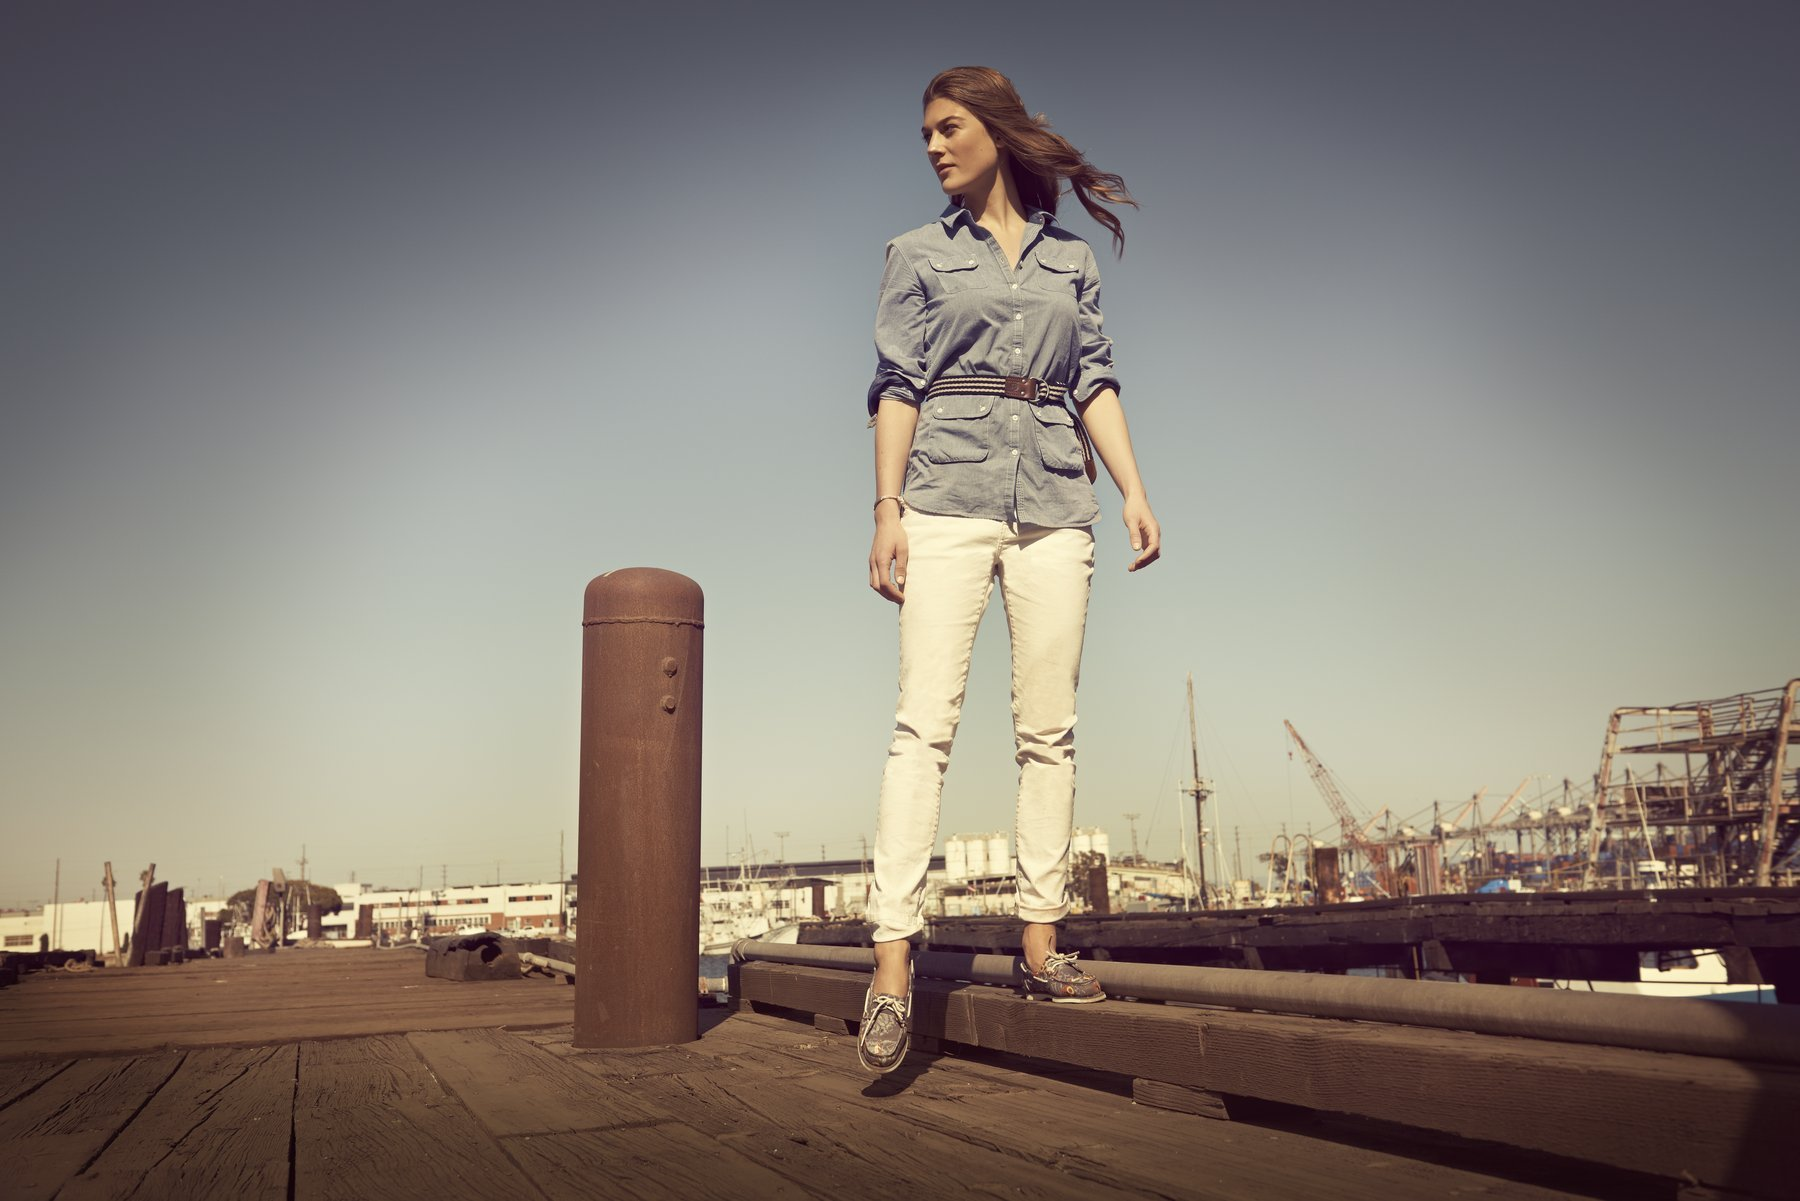 TIMBERLAND_LA_DAY_6_H2T_W_HARBOUR_OUTFIT_2_ASIA_2_093 1